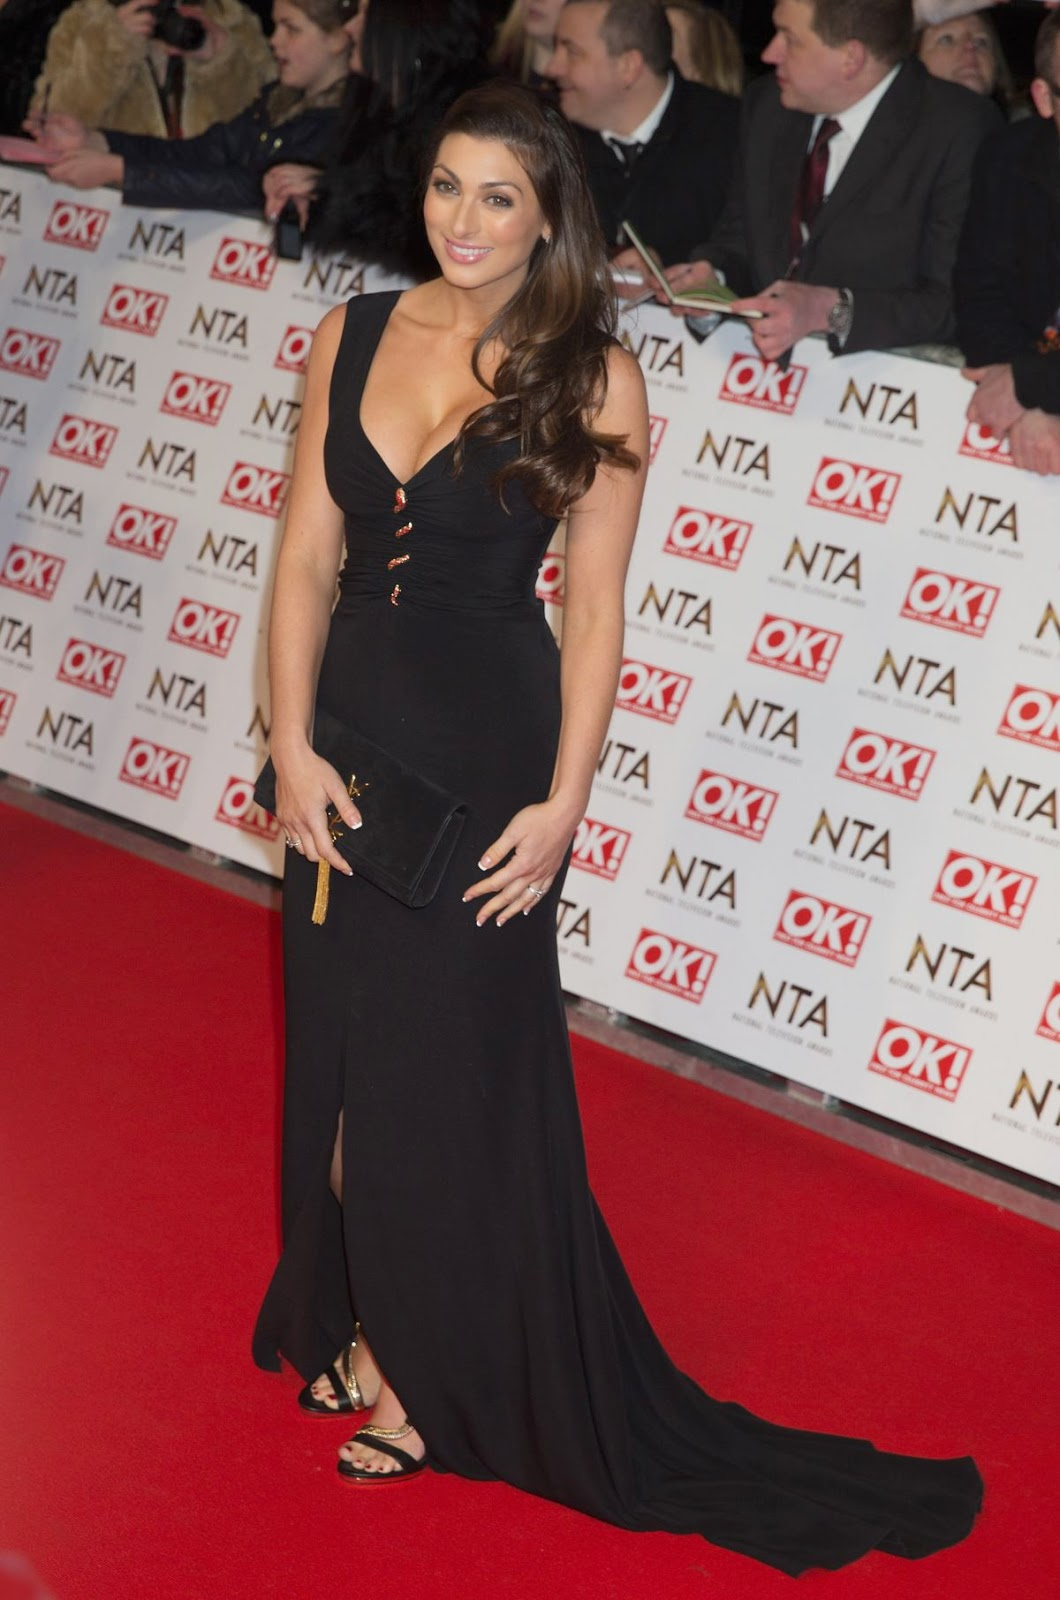 Entrepreneur, reality television contestant: Luisa Zissman - National Television Awards in London